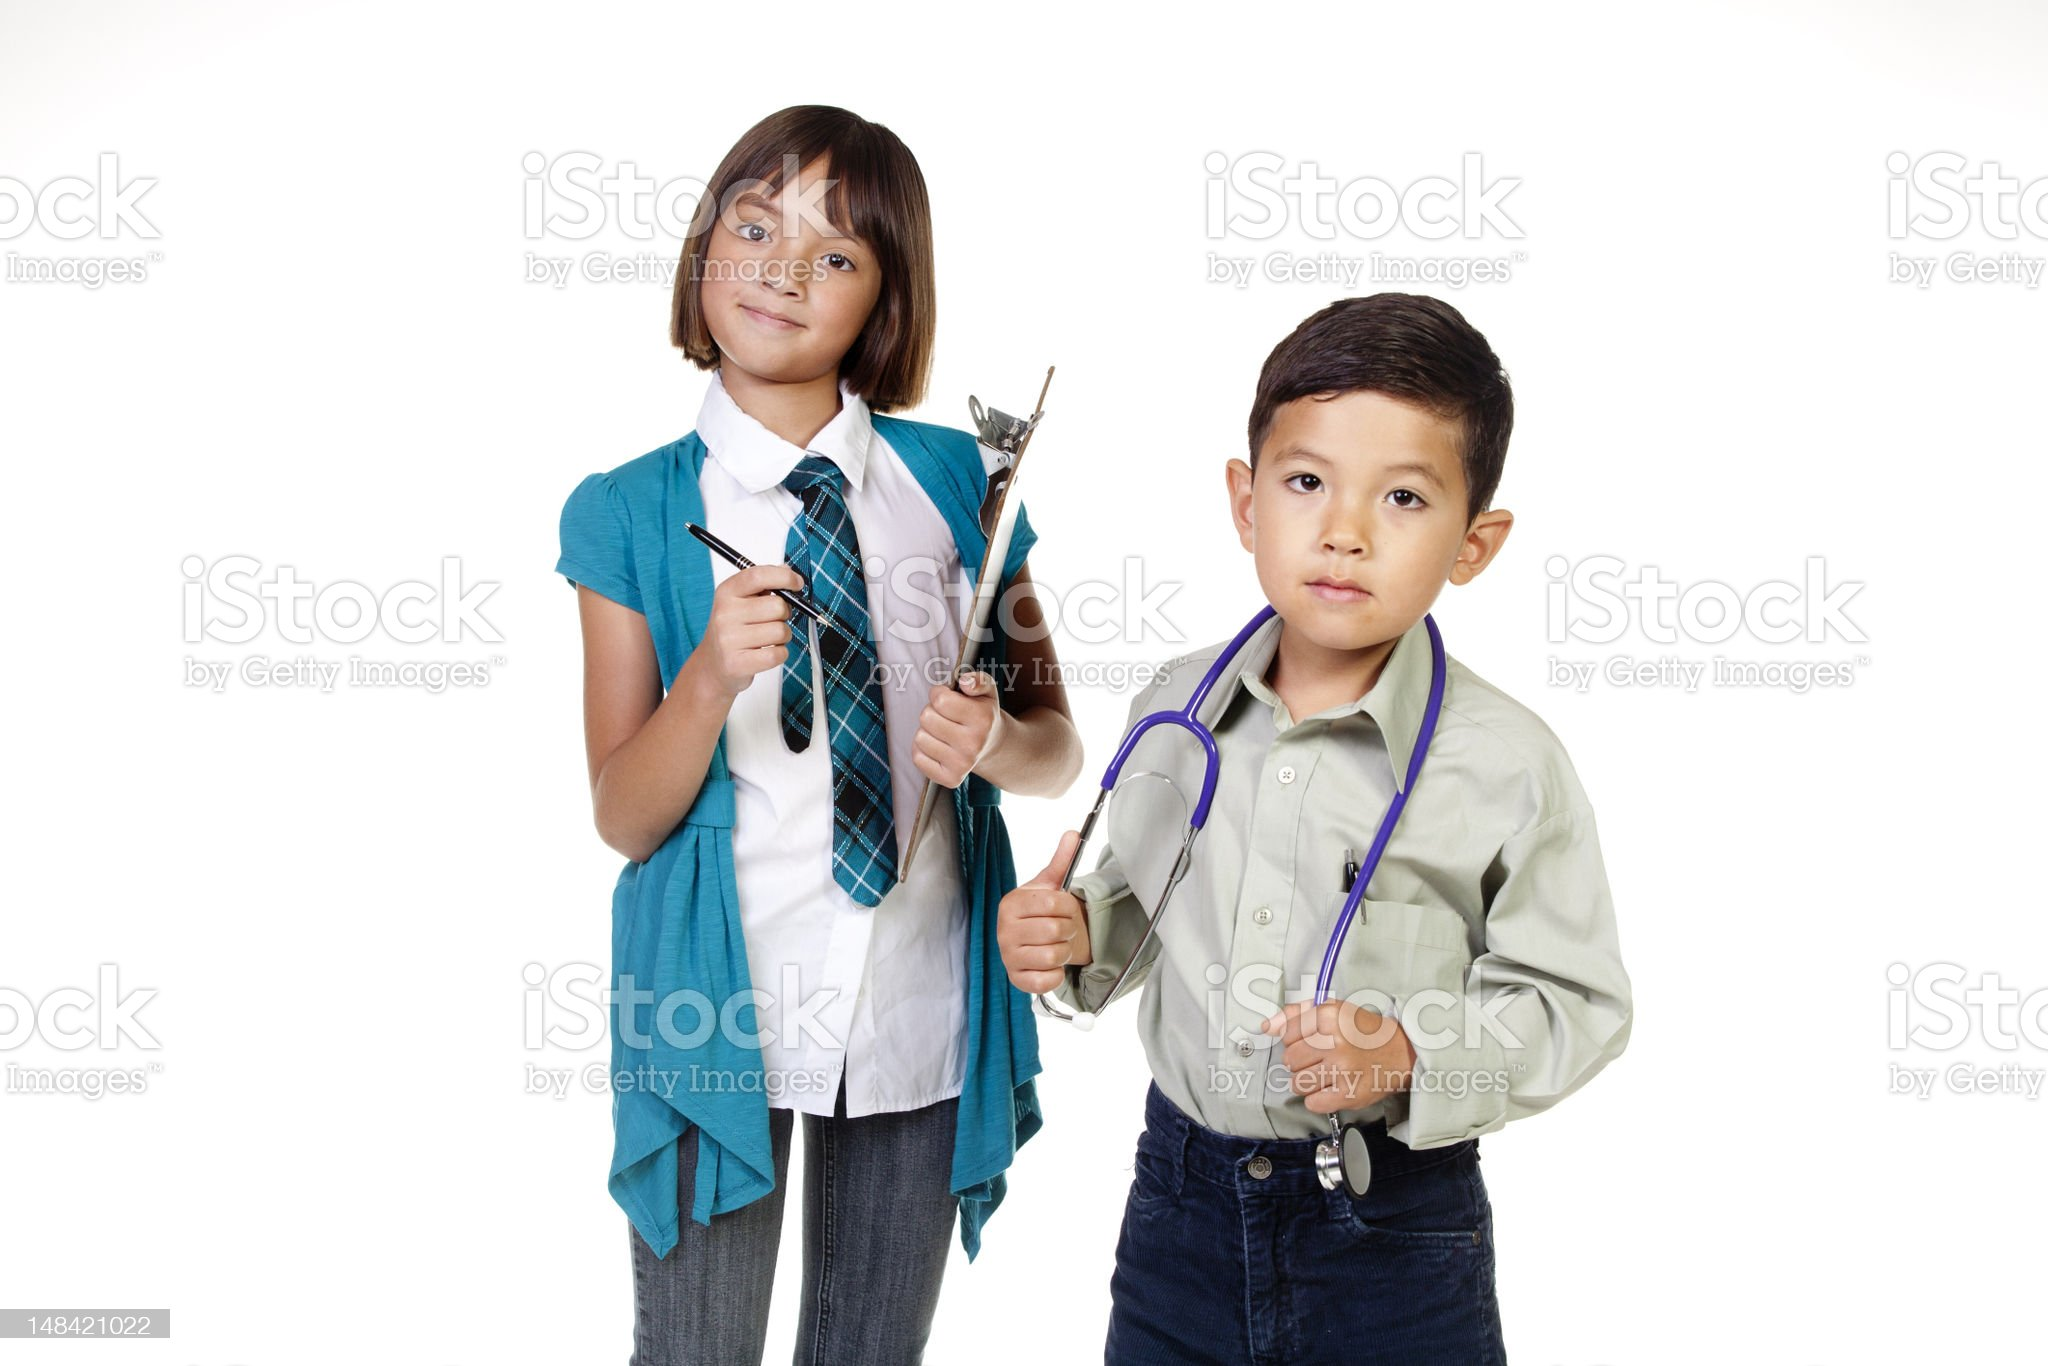 Our future professionals. royalty-free stock photo